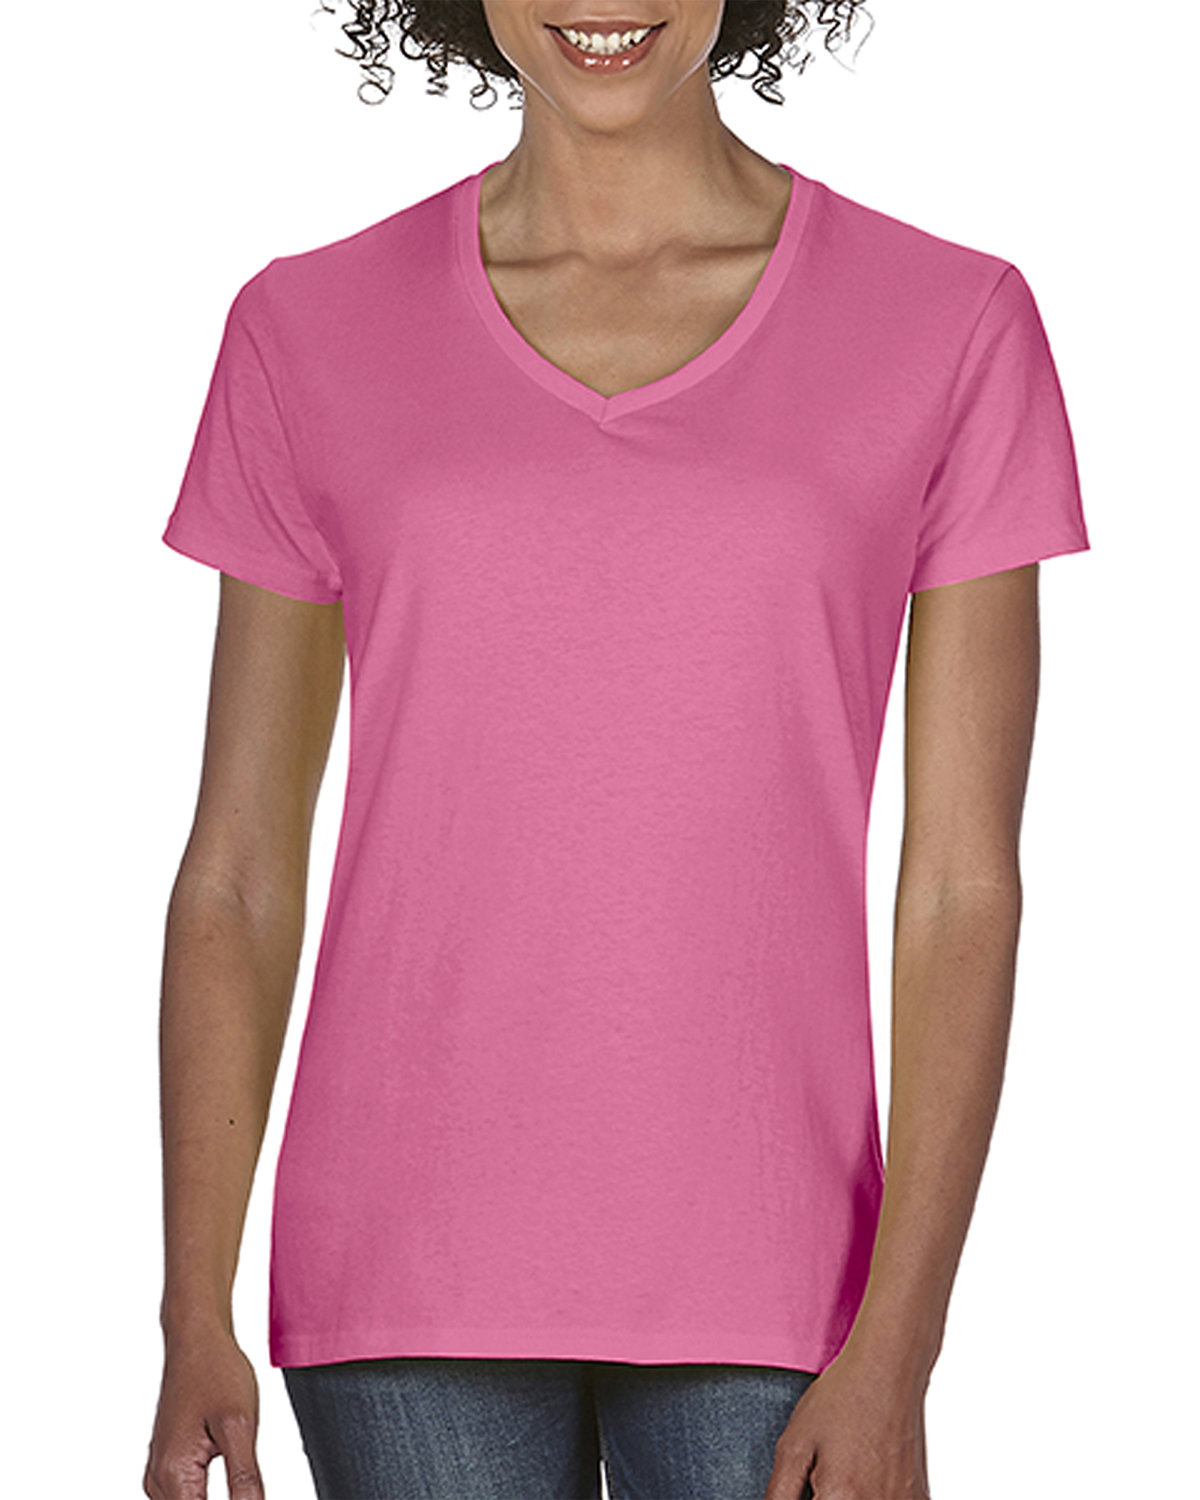 Comfort Colors Ladies'  Midweight RS V-Neck T-Shirt CRUNCHBERRY